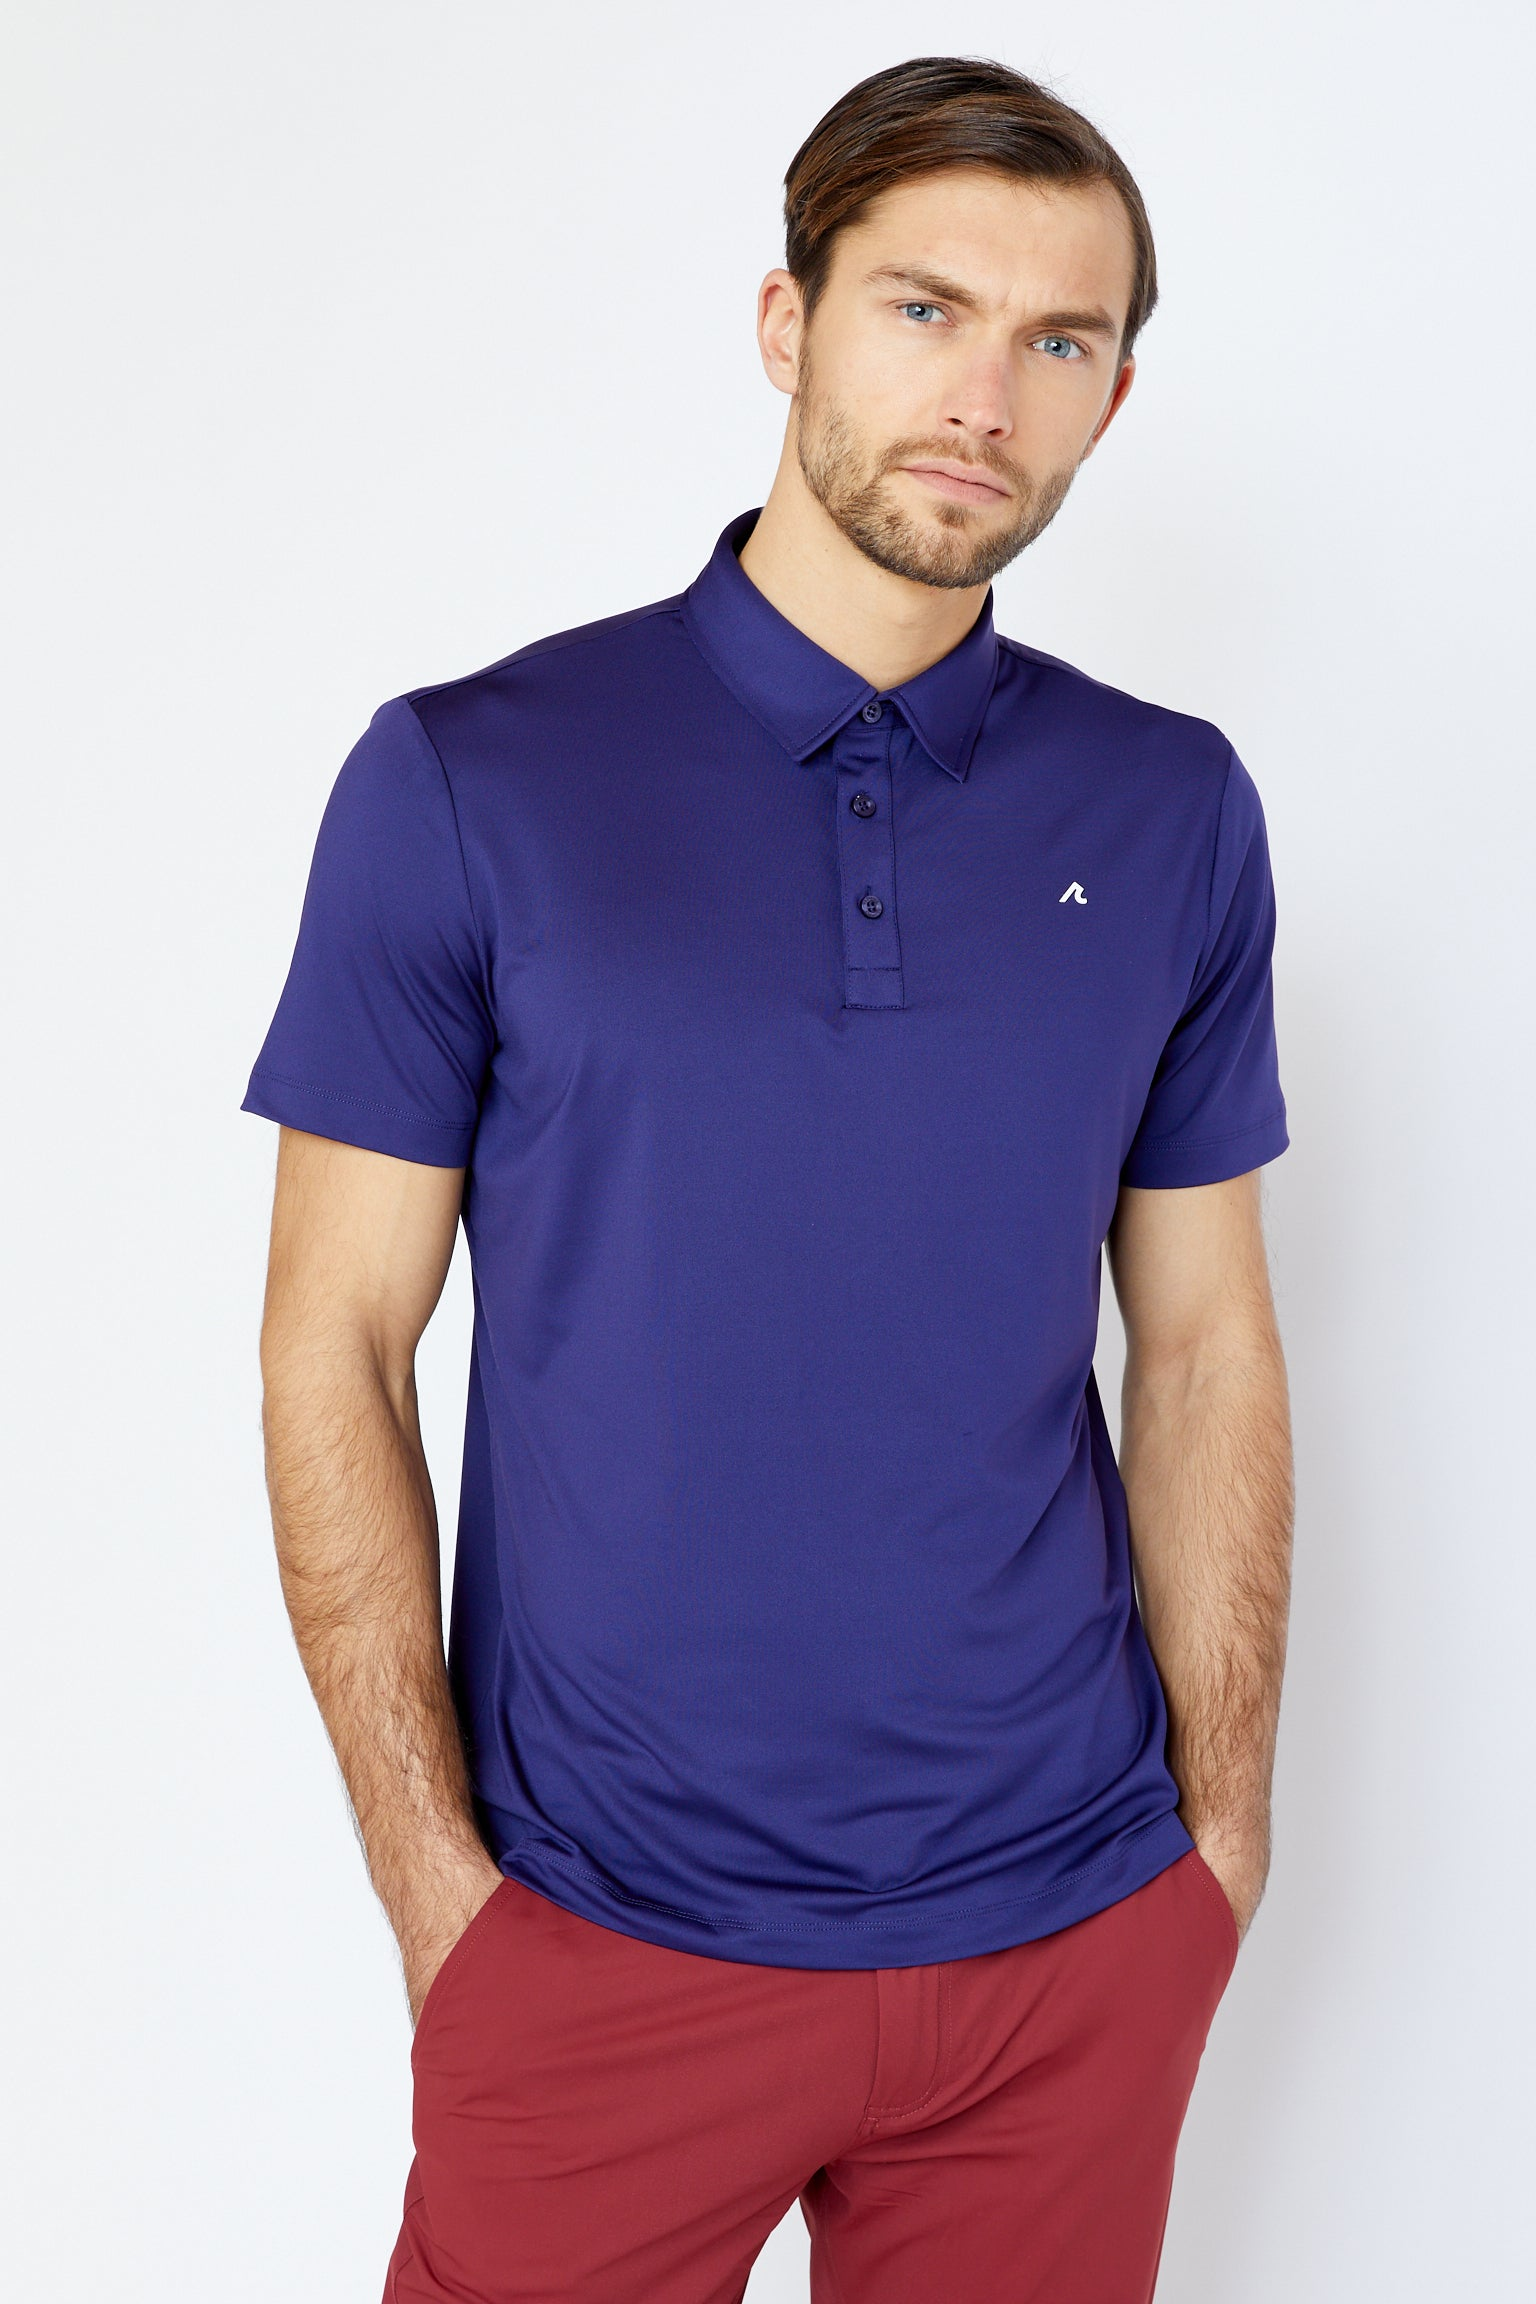 Stanyan Polo in Astral Aura/White